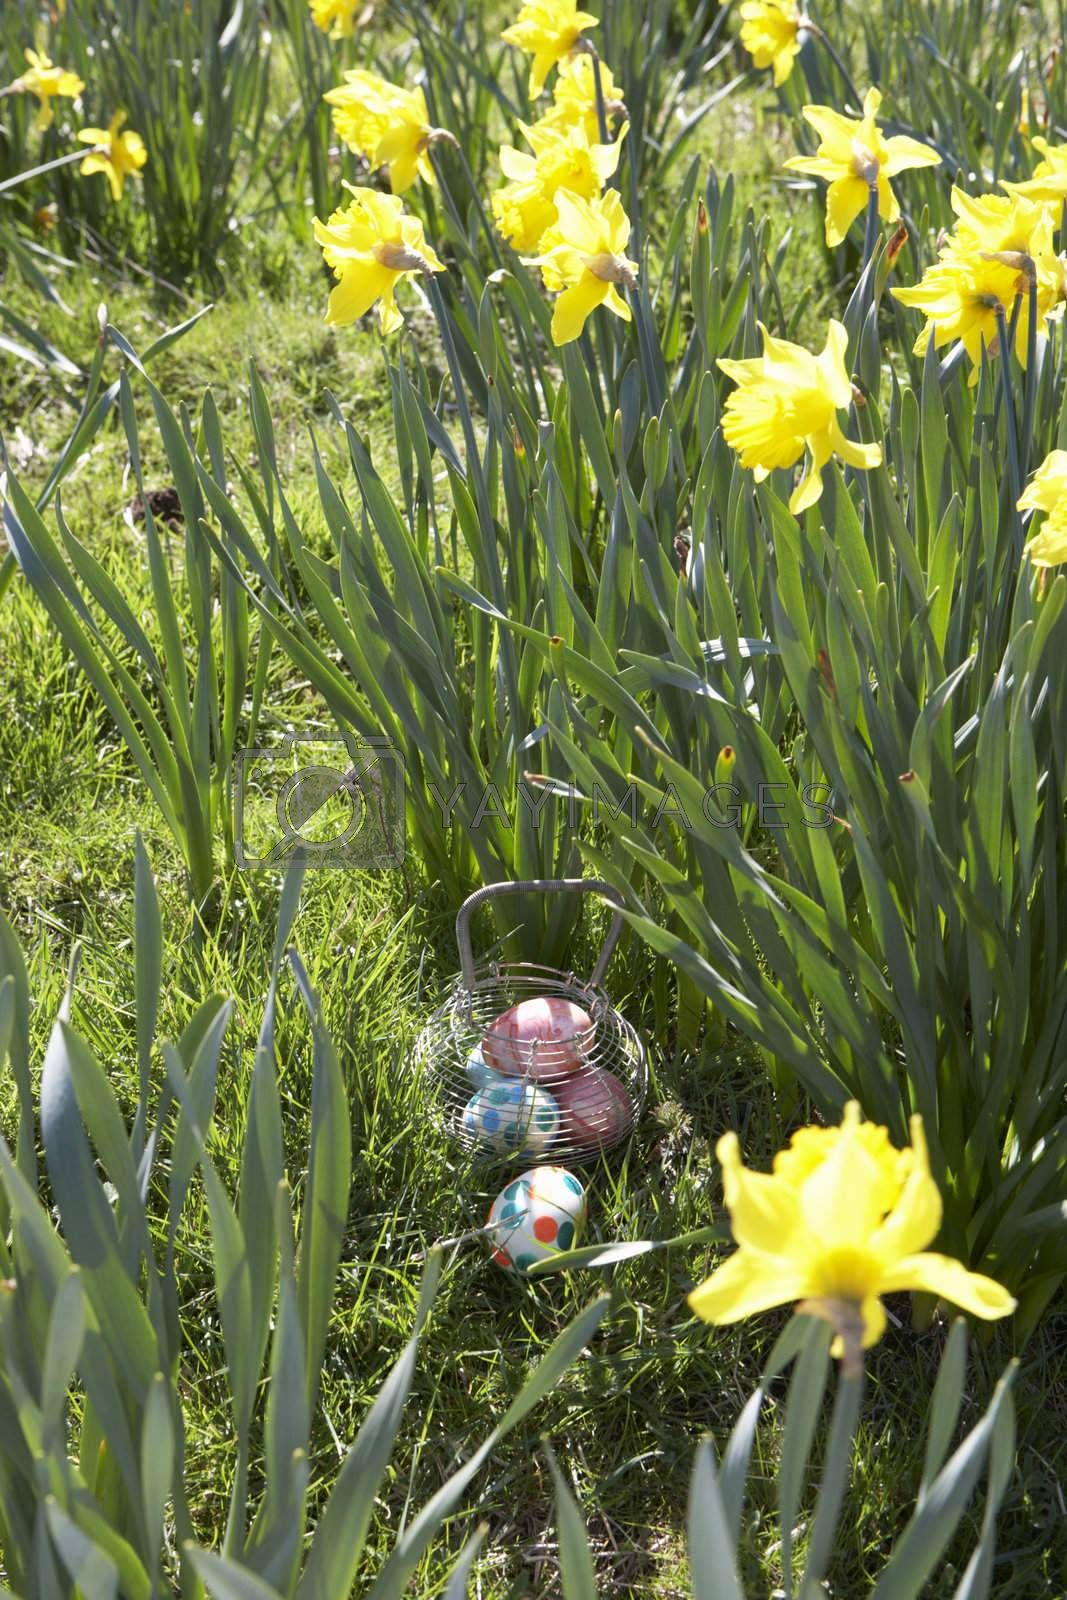 Royalty free image of Easter Eggs Hidden For Hunt In Daffodil Field by omg_images